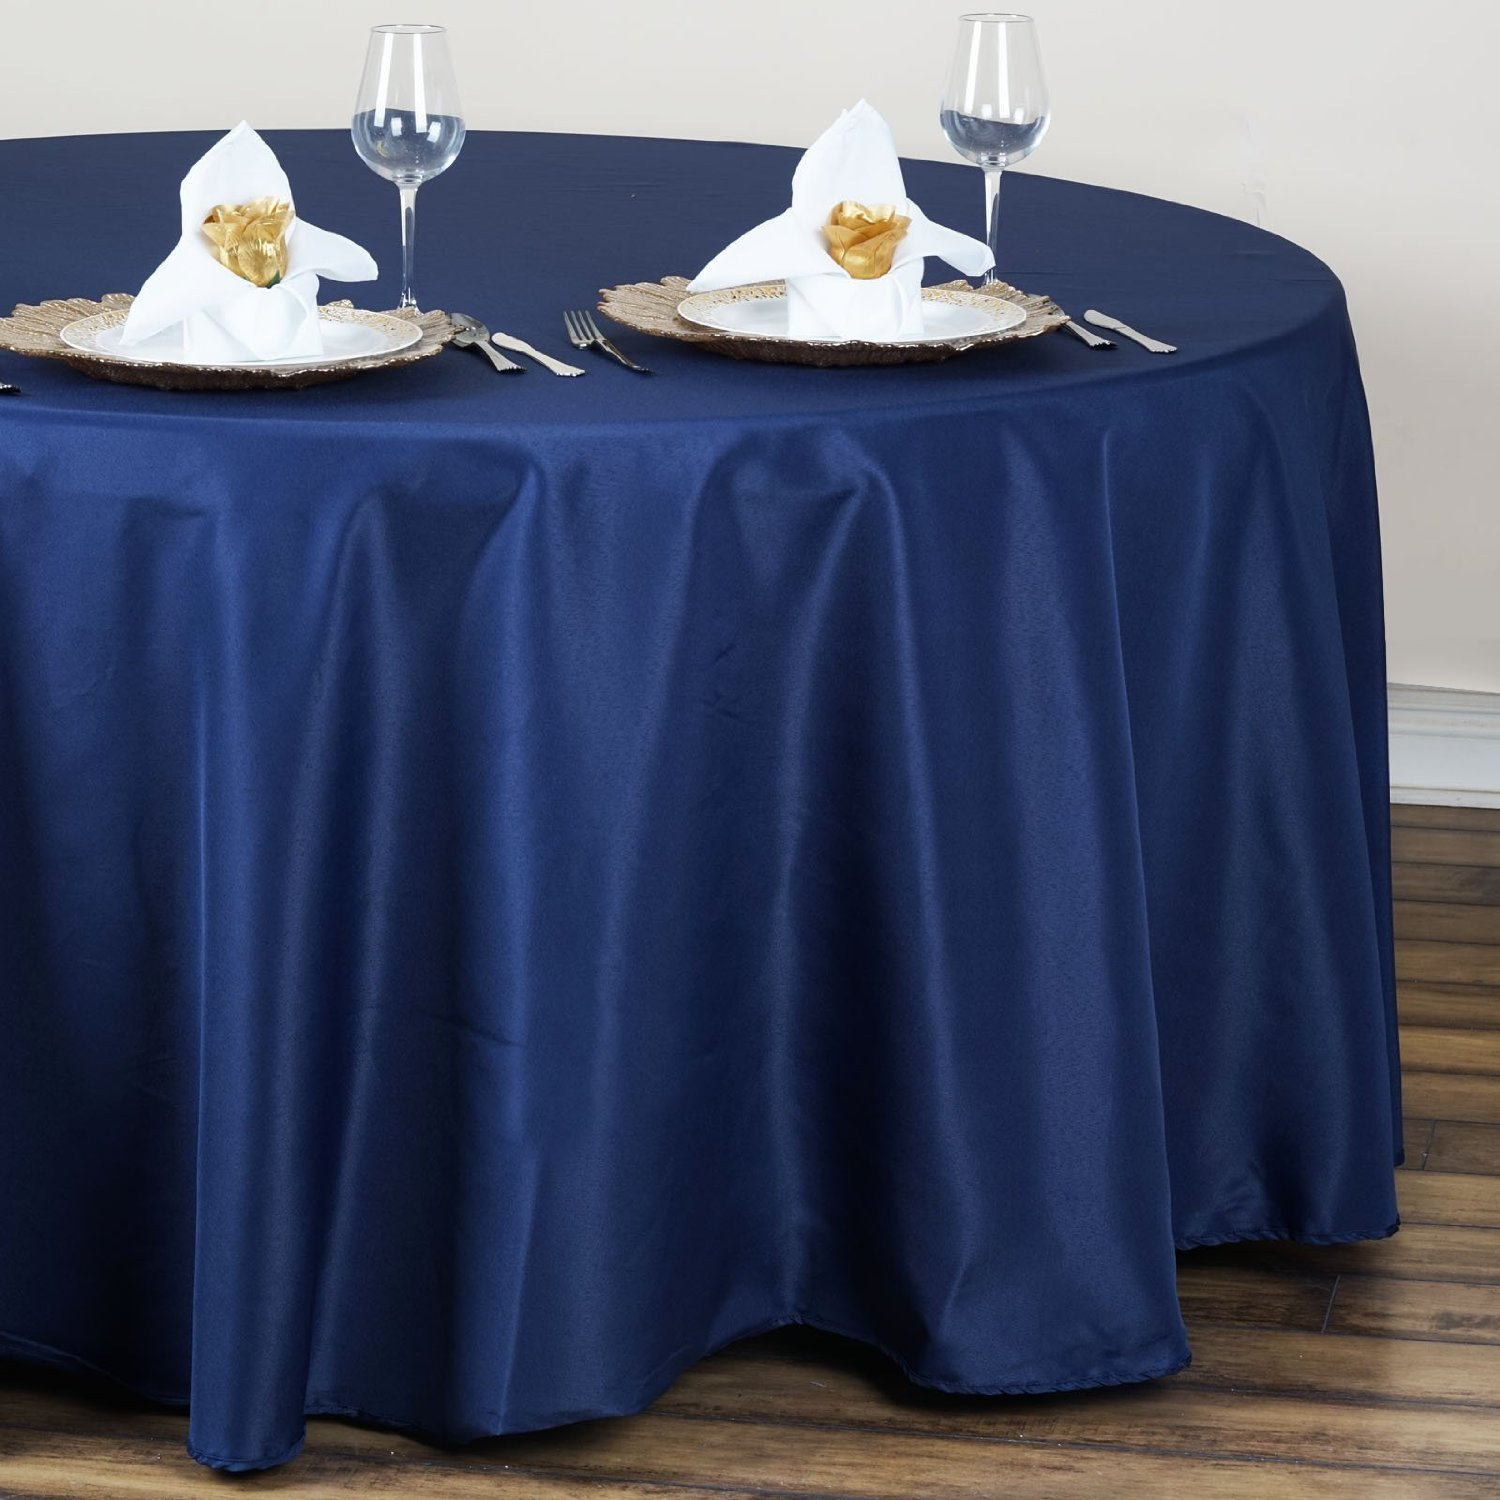 GFCC Champagne Round Sequin Tablecloth 120 Wedding Sparkly Table Cover 120 Wedding Sparkly Table Cover